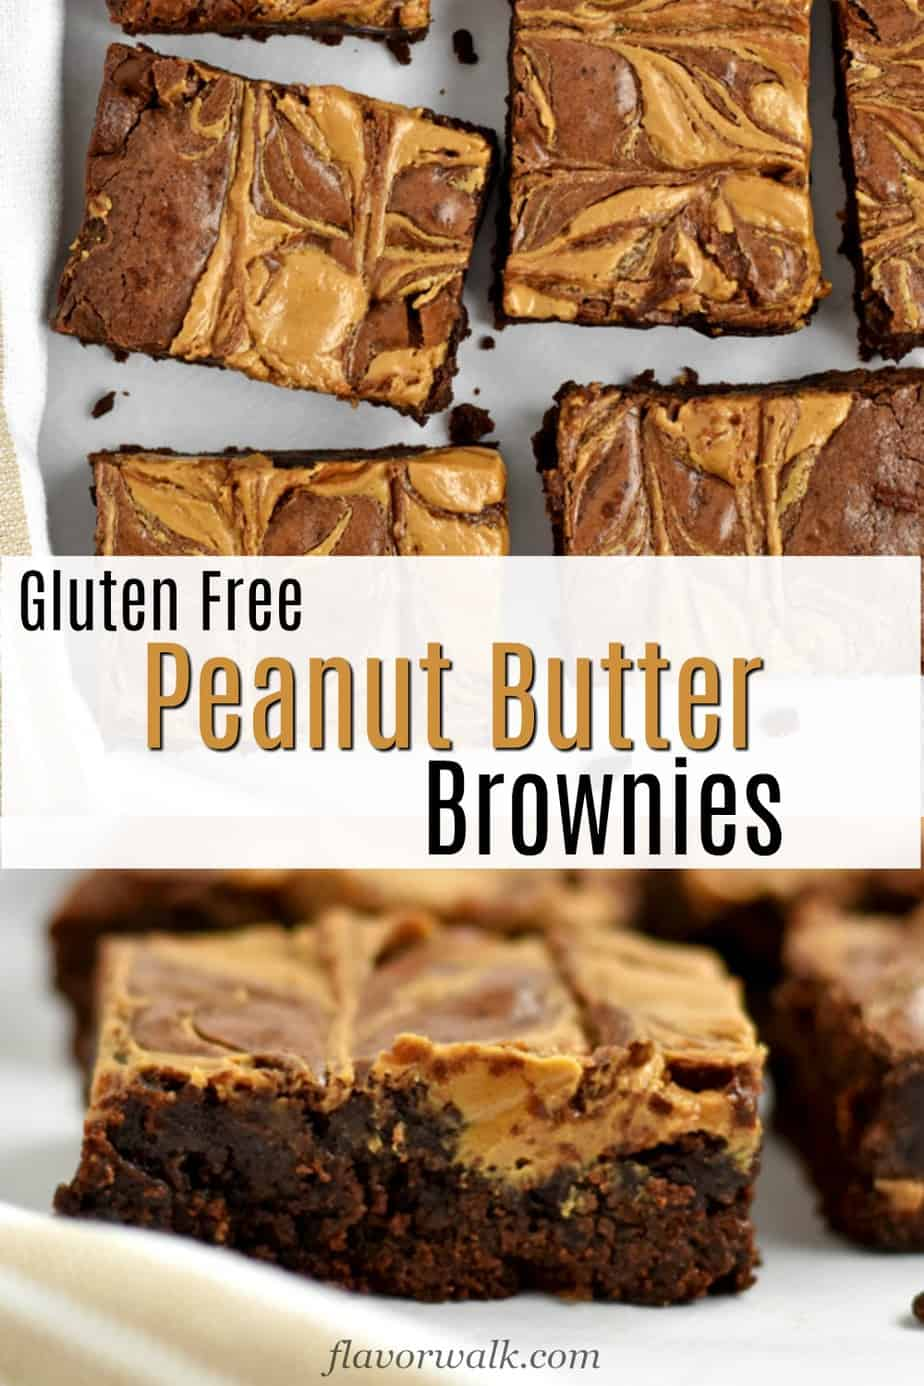 Top image is overhead view of gluten free peanut butter brownies on parchment paper, middle image is text overlay, bottom image is close up of gluten free peanut butter brownies.